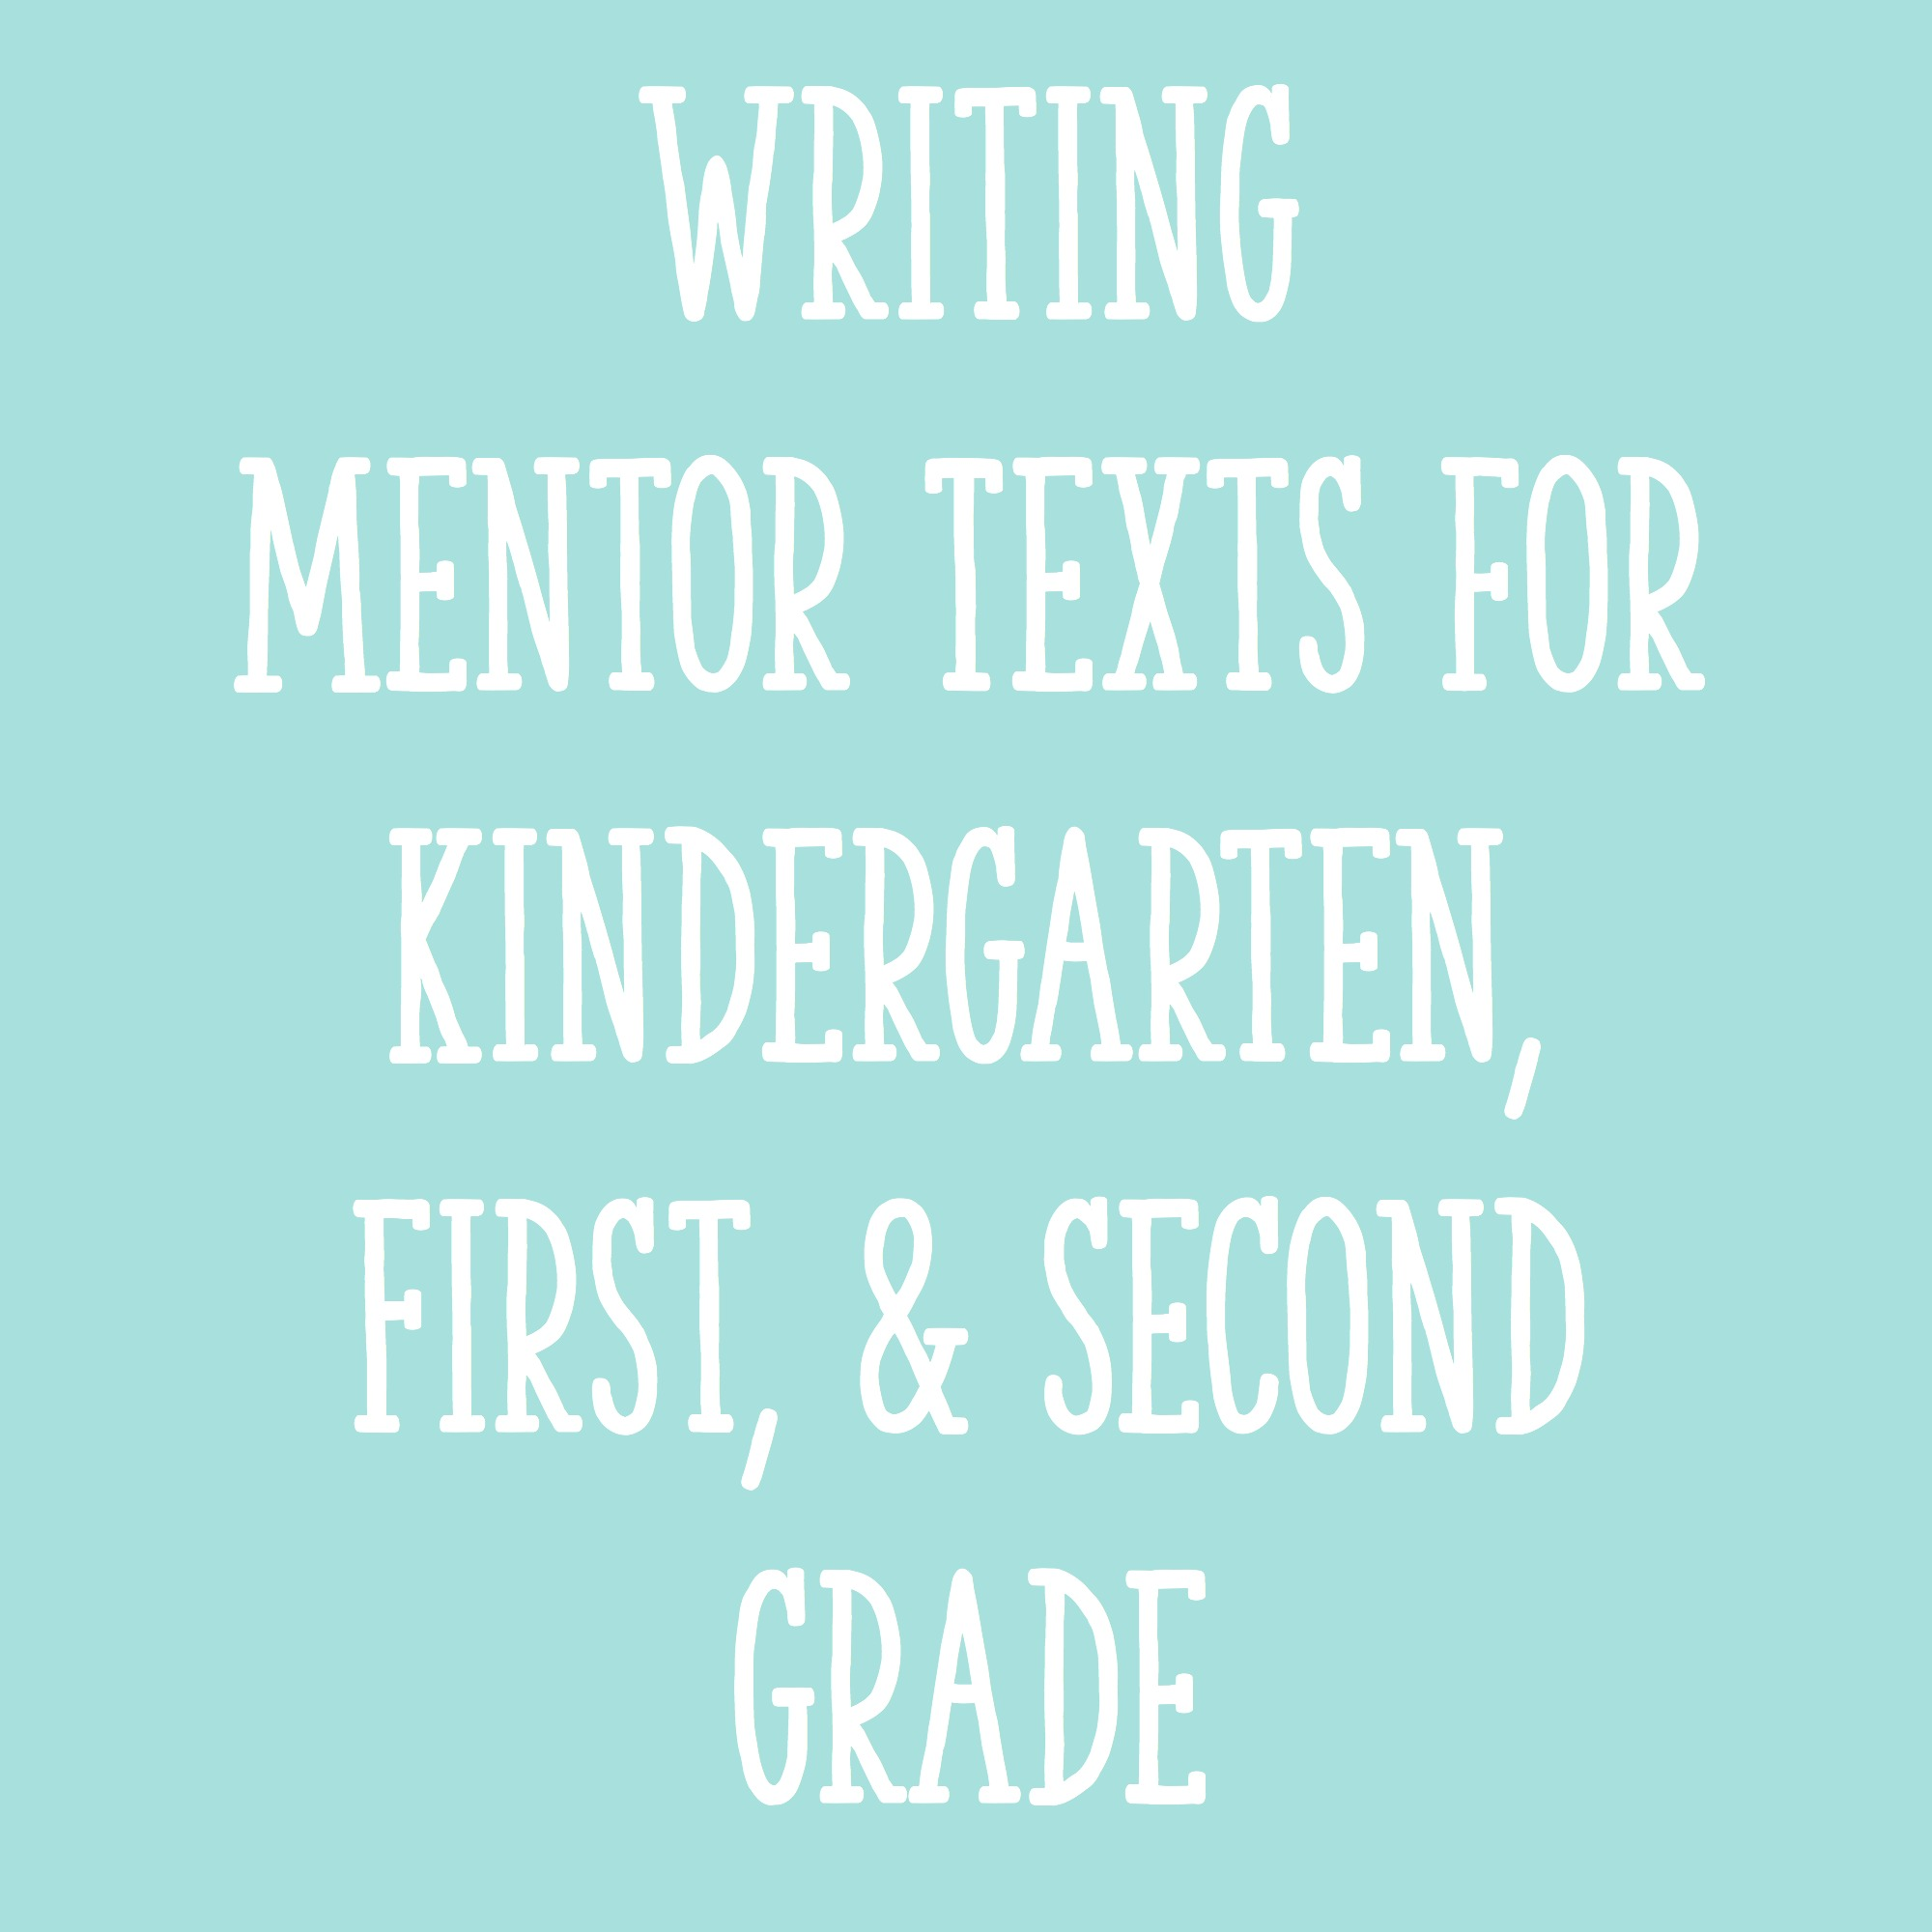 Writing Mentor Texts For Kindergarten First And Second Grade